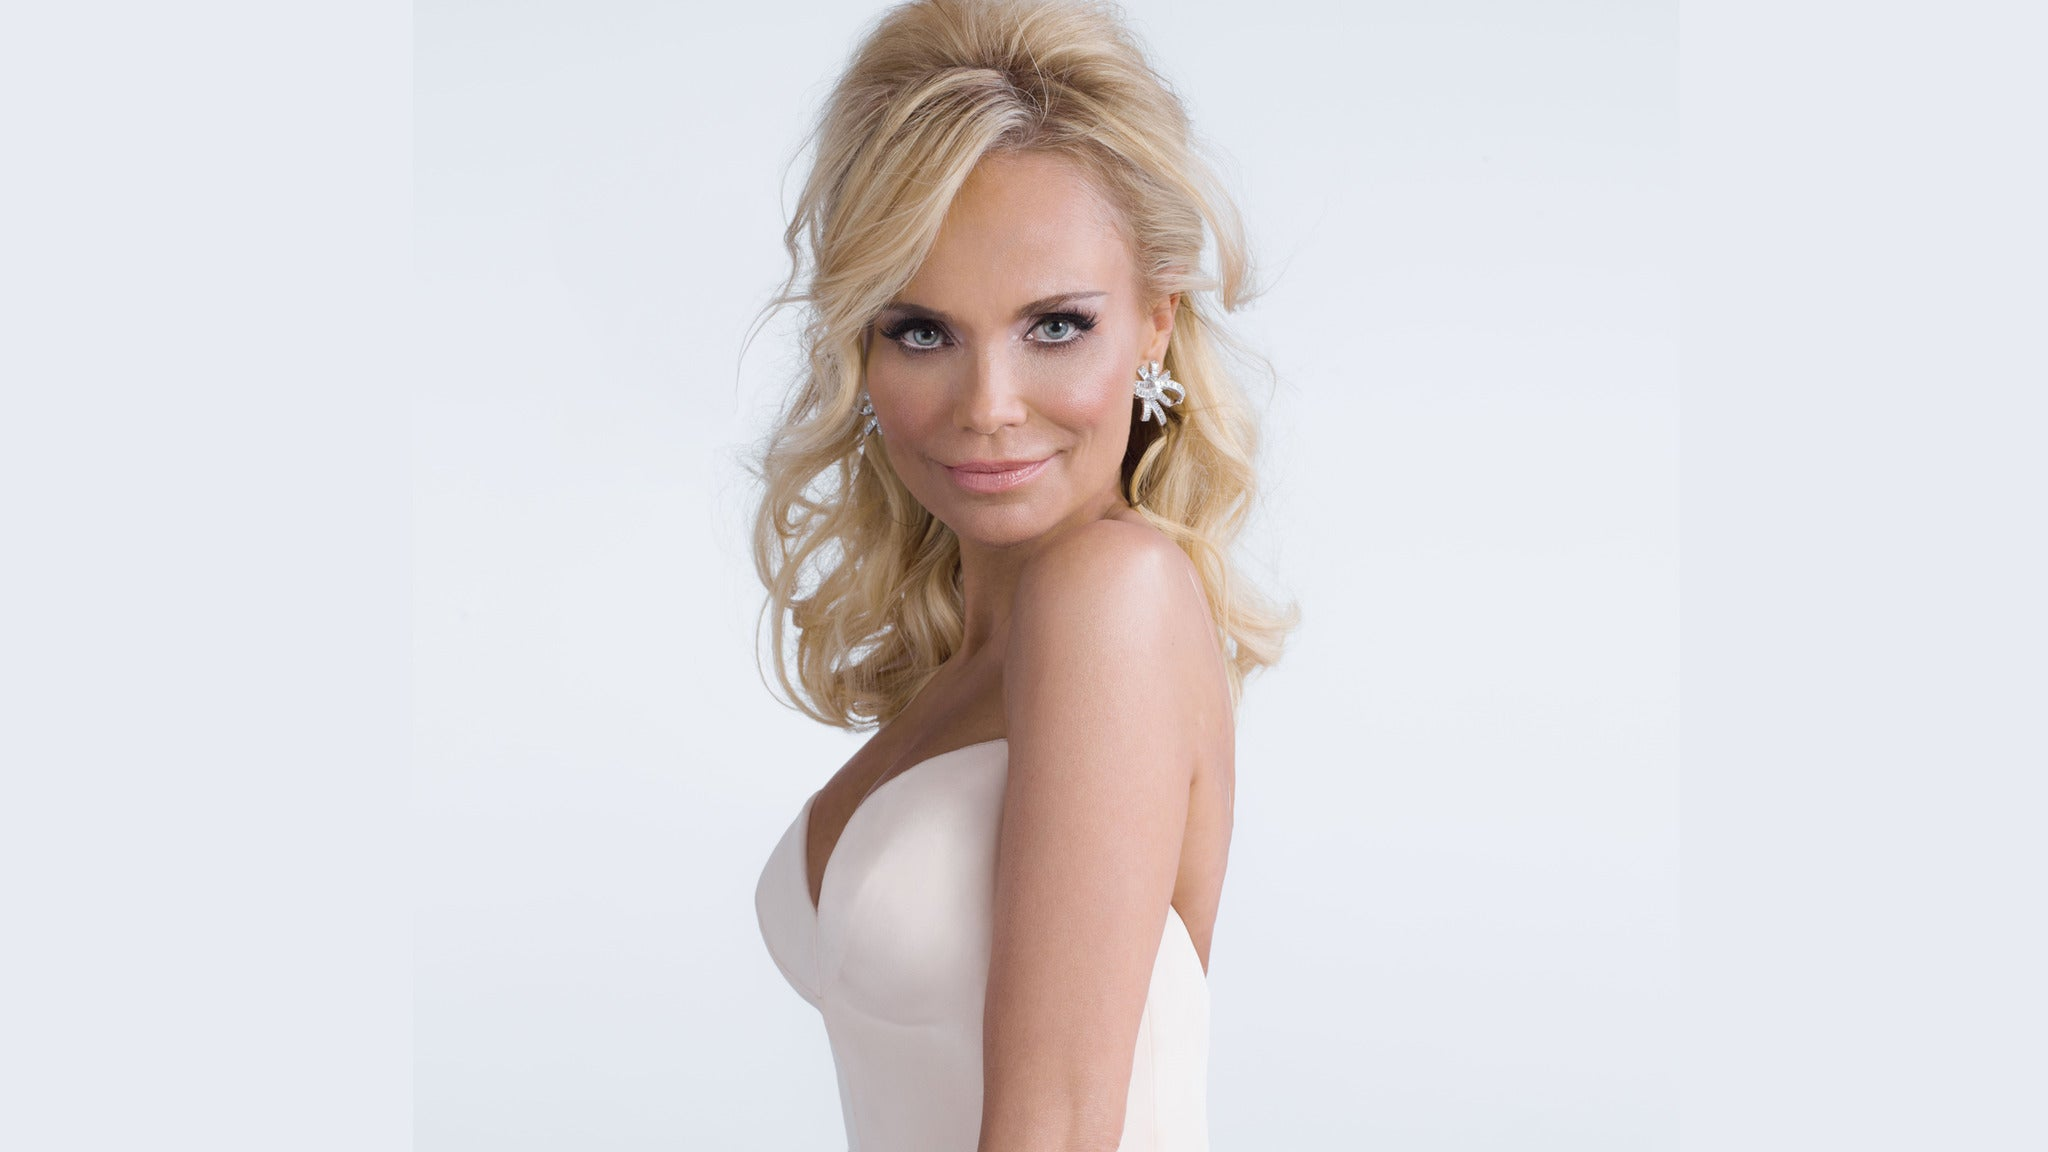 Kristin Chenoweth at Music Box - San Diego, CA 92101